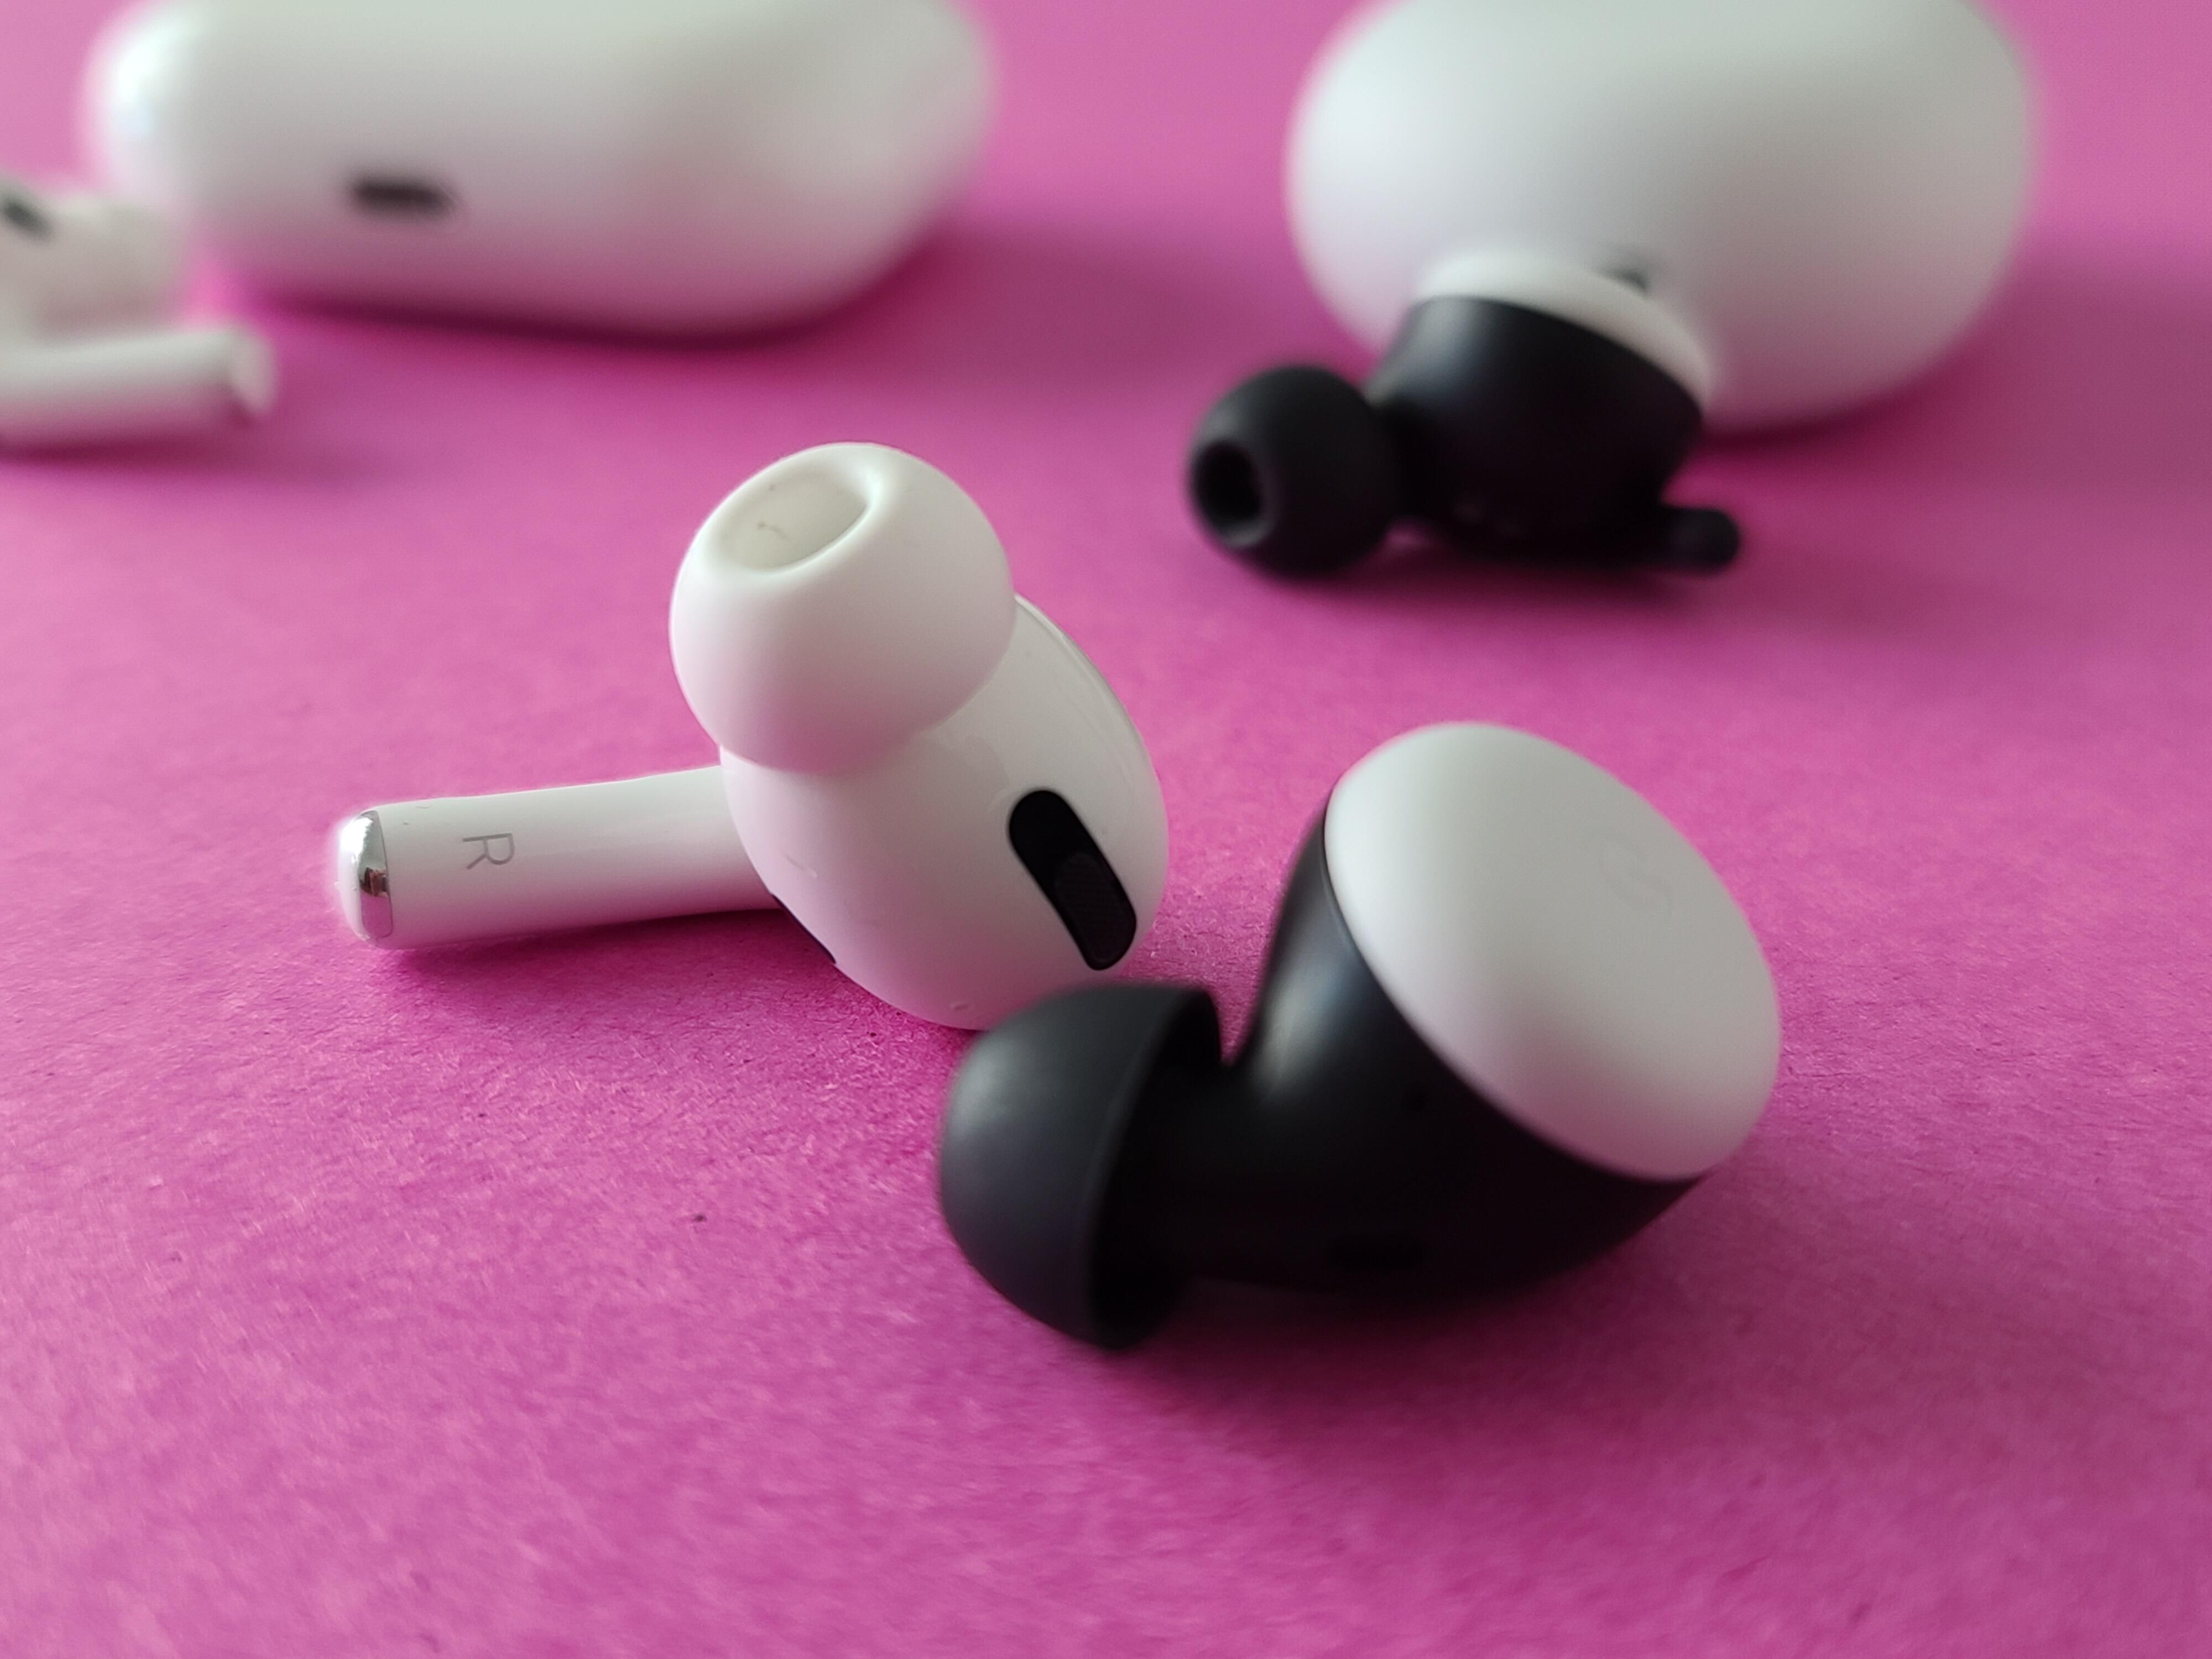 apple-airpods-vs-samsung-buds-plus-9313